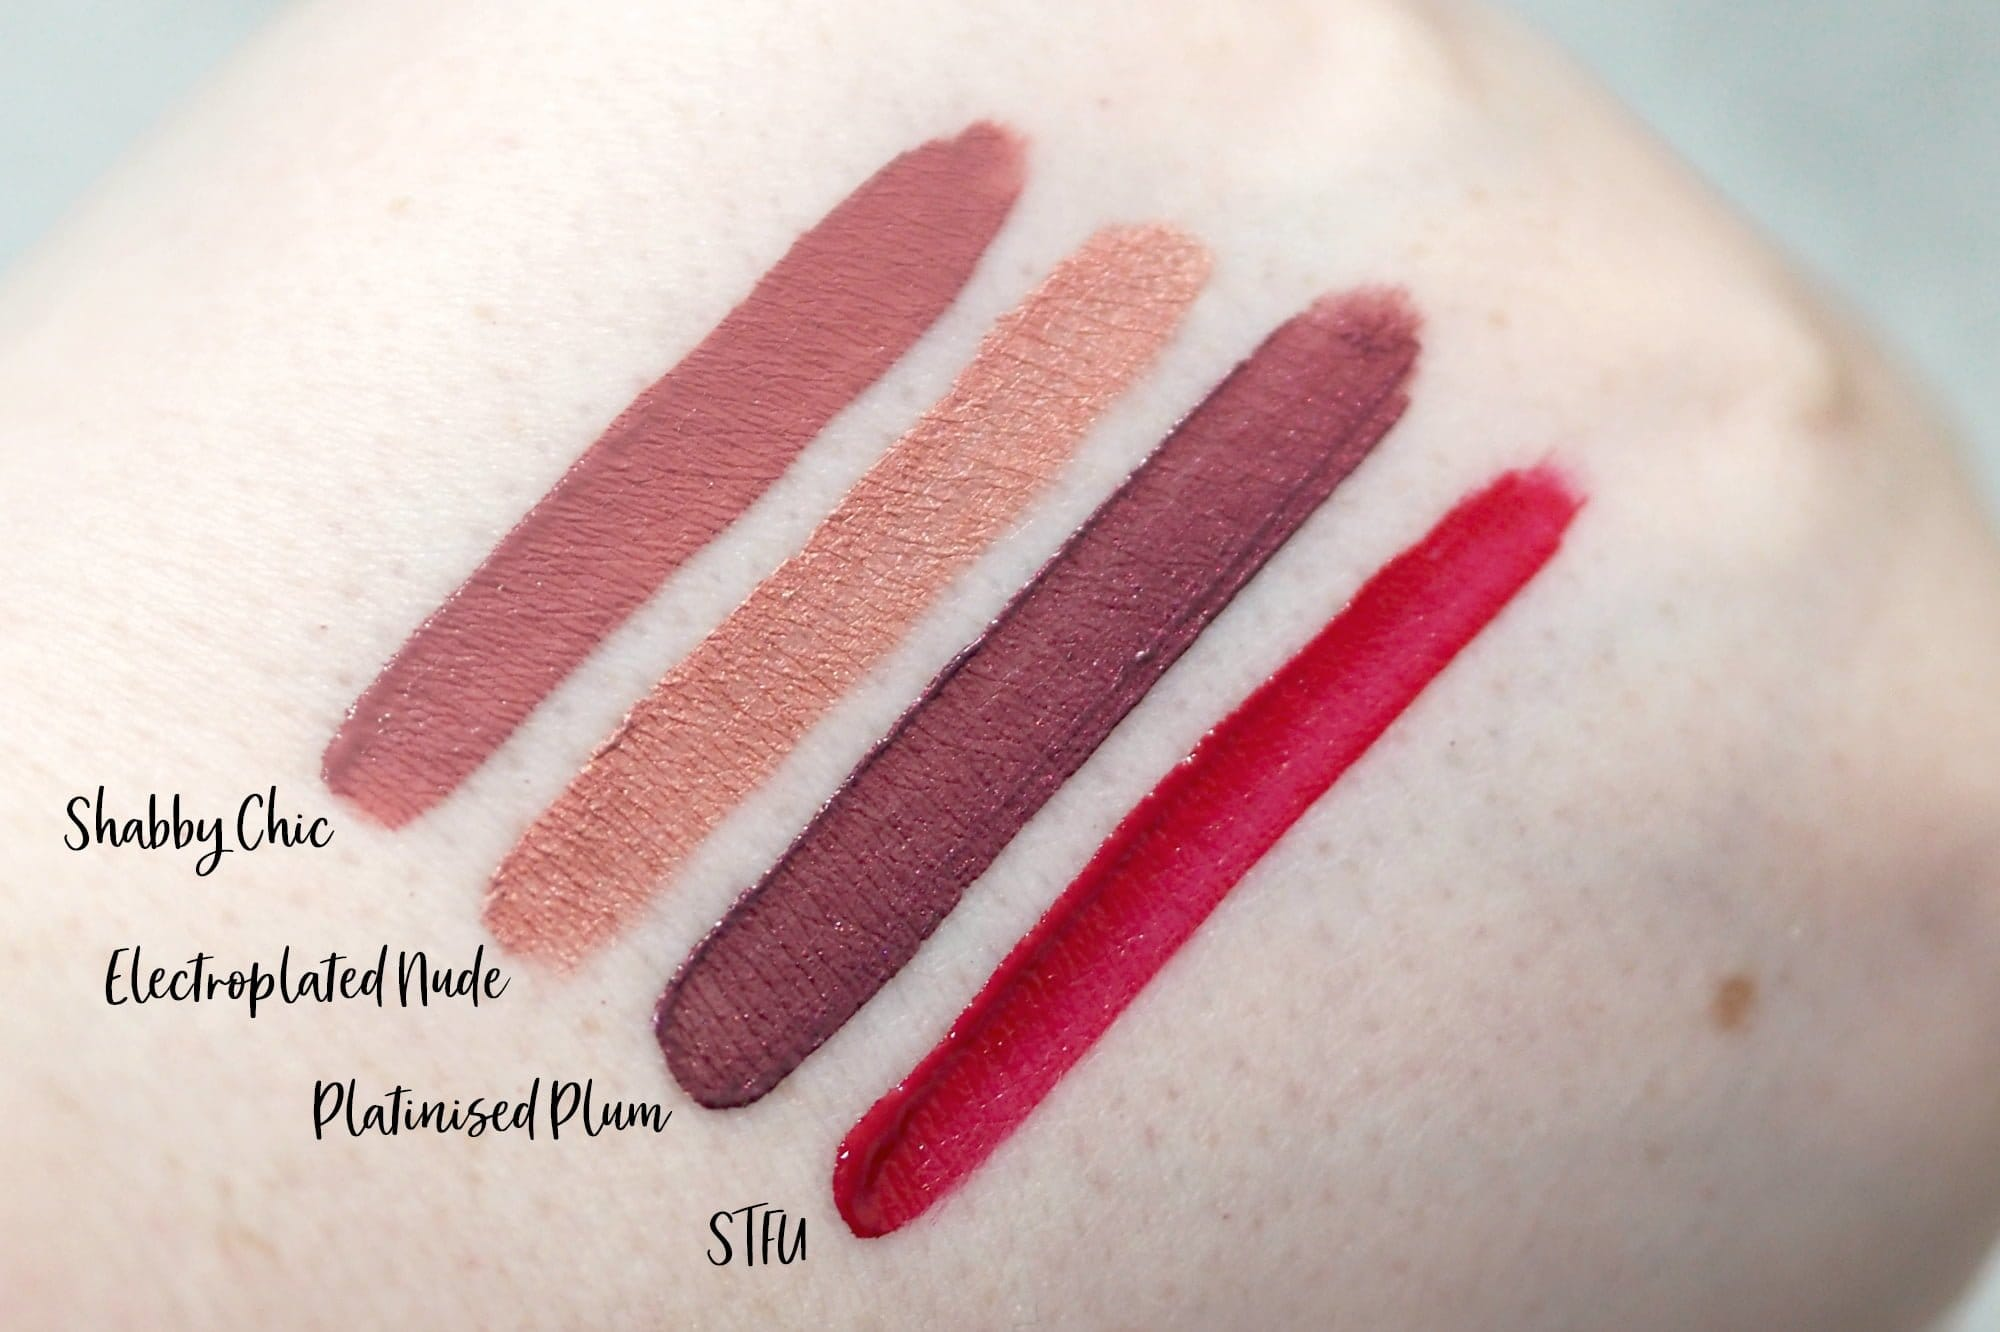 Sleek MakeUP Ultimatte Lips